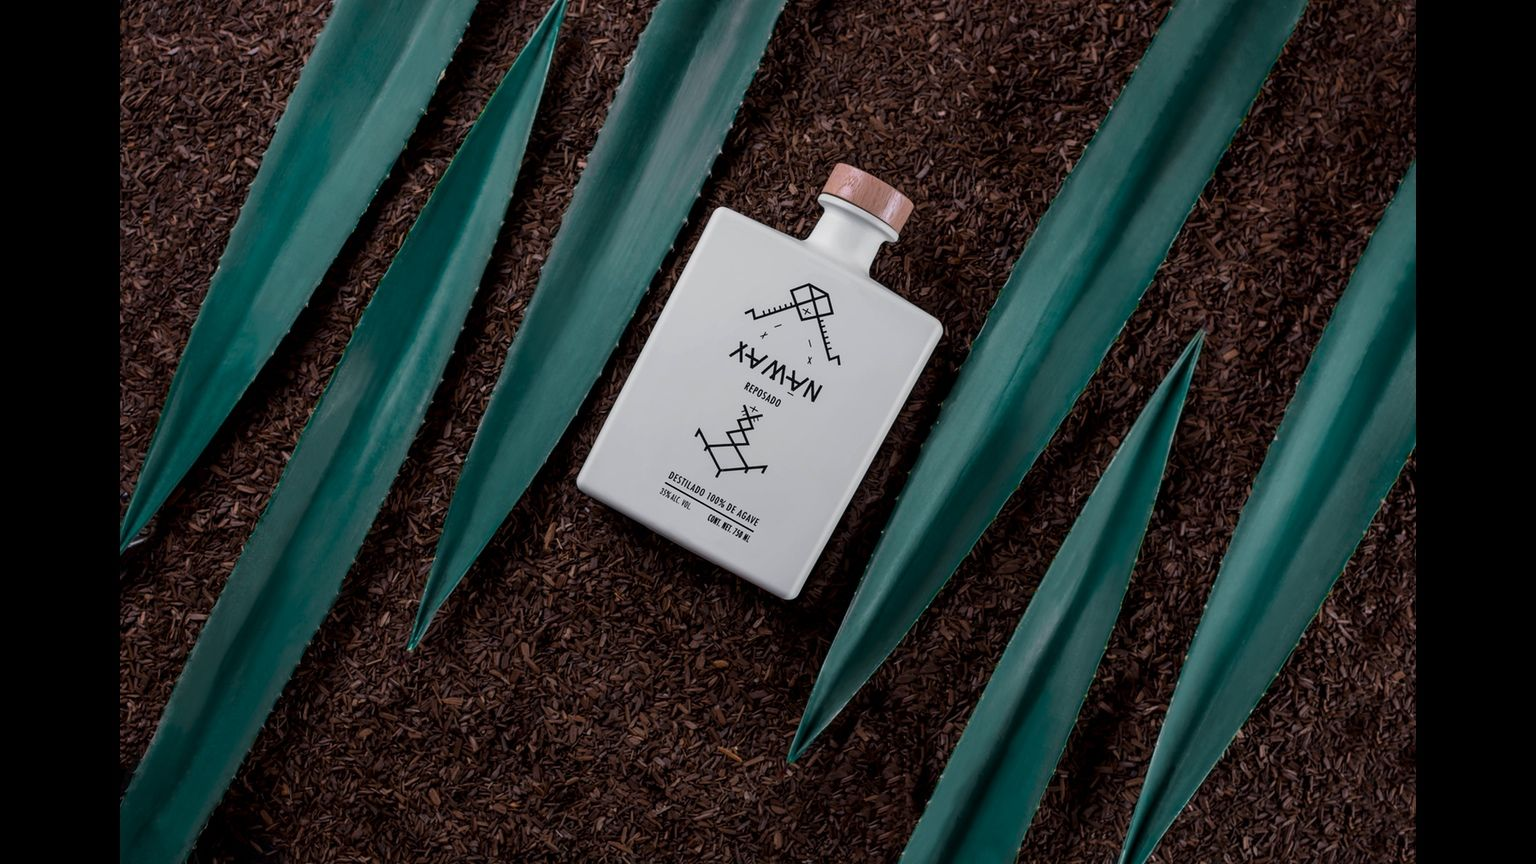 Xamān comes as a result of a perfect blend from two of the most famous agave plants: Azul Tequilana Weber and Angustifolia (Espadín)